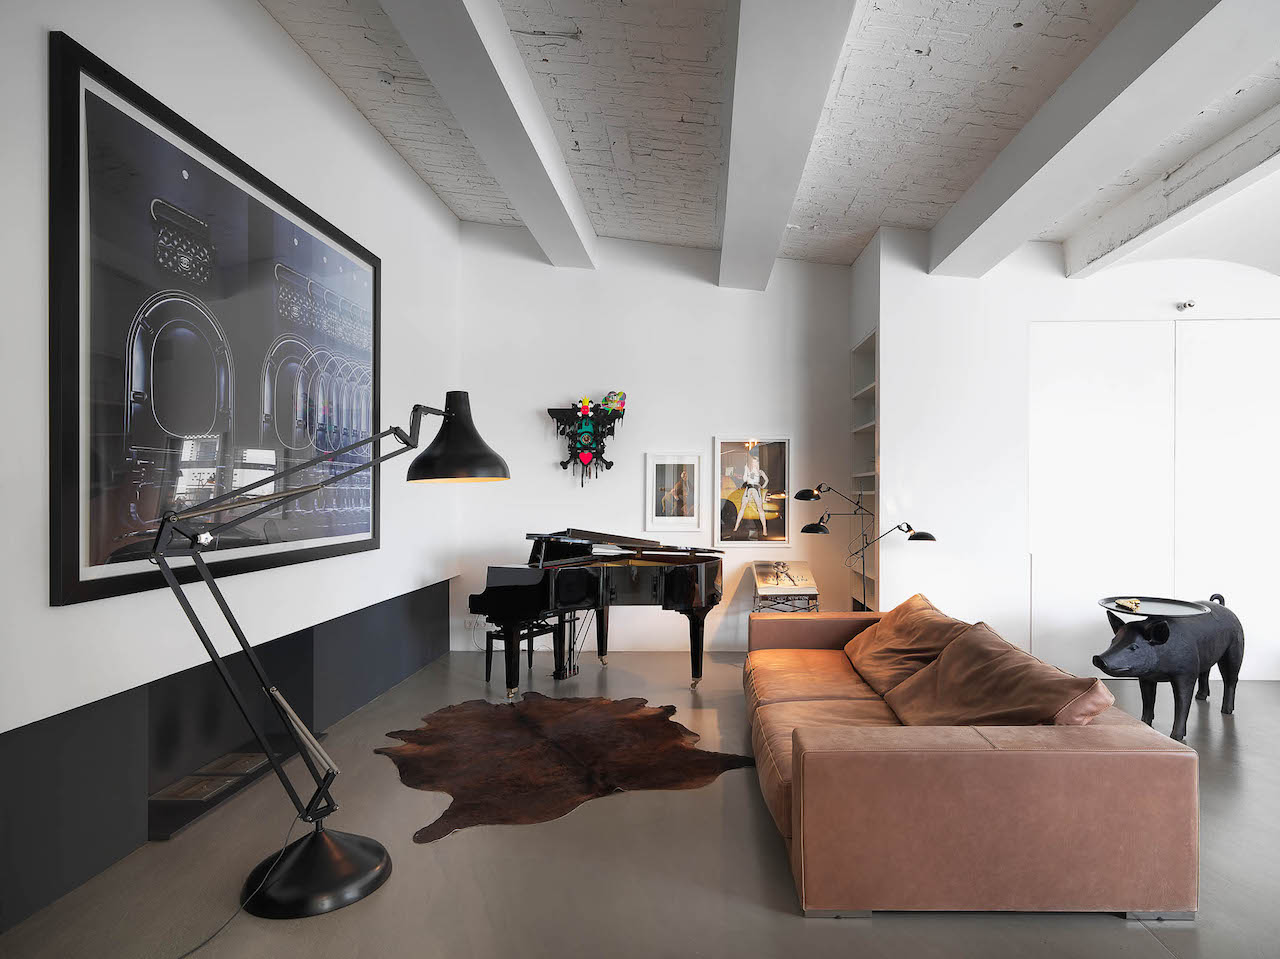 In the living room a large sofa in dusty-pink faces the fireplace, Schumann Design